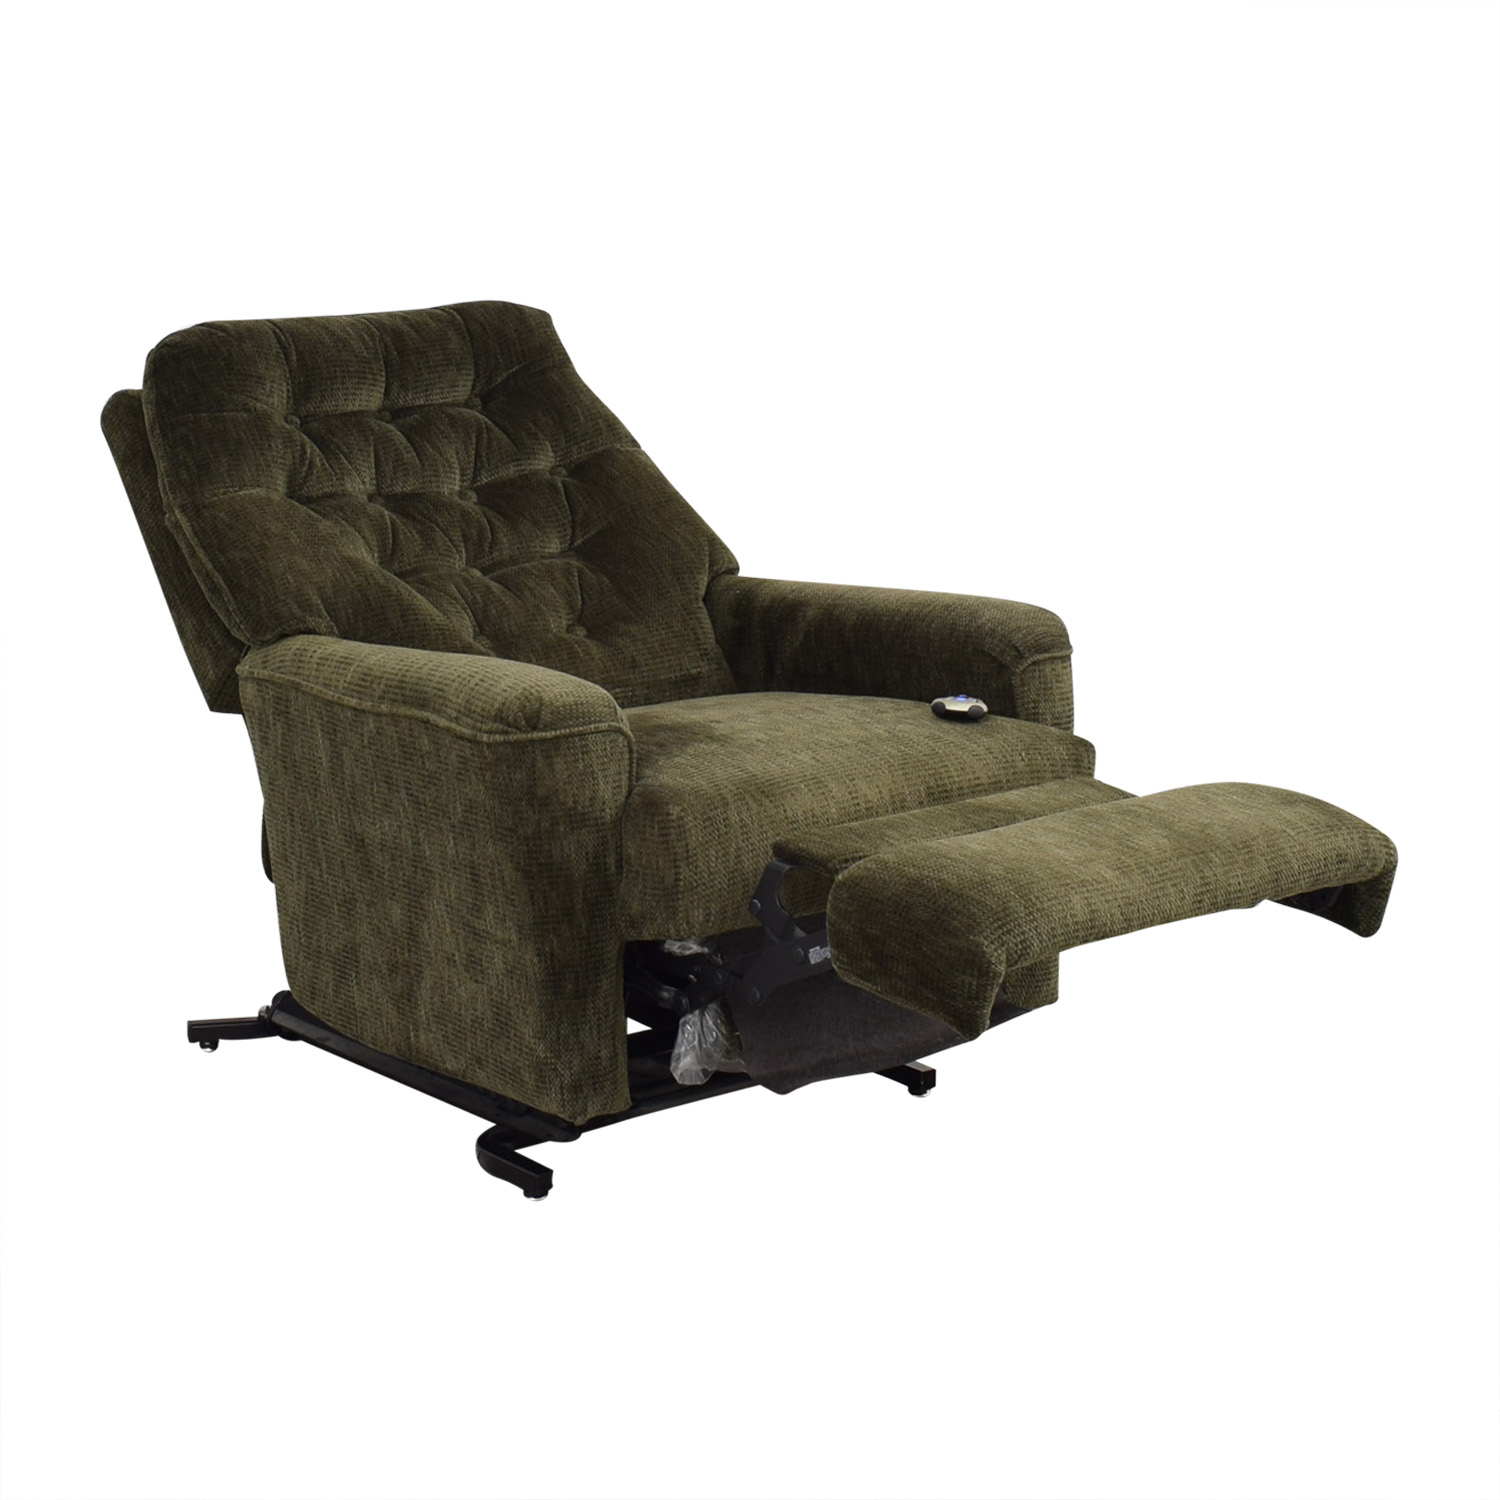 Best Chairs Best Chairs Power Lift Recliner ma